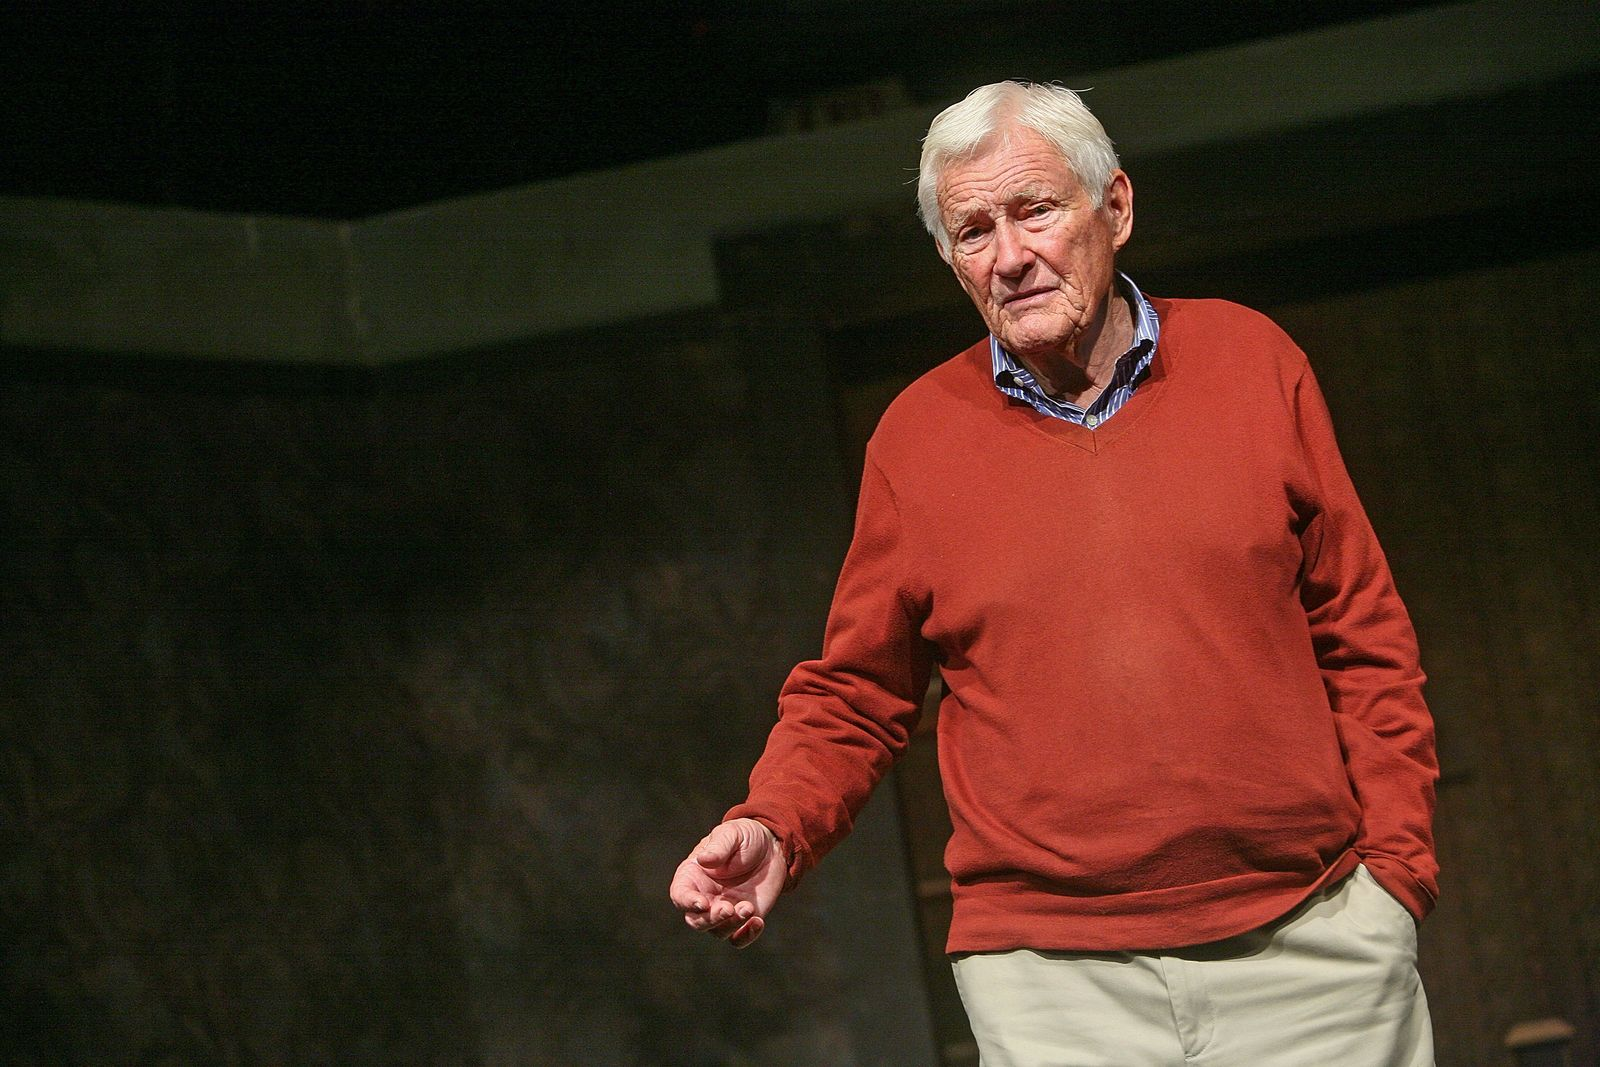 Safe At Home - An Evening With Orson Bean